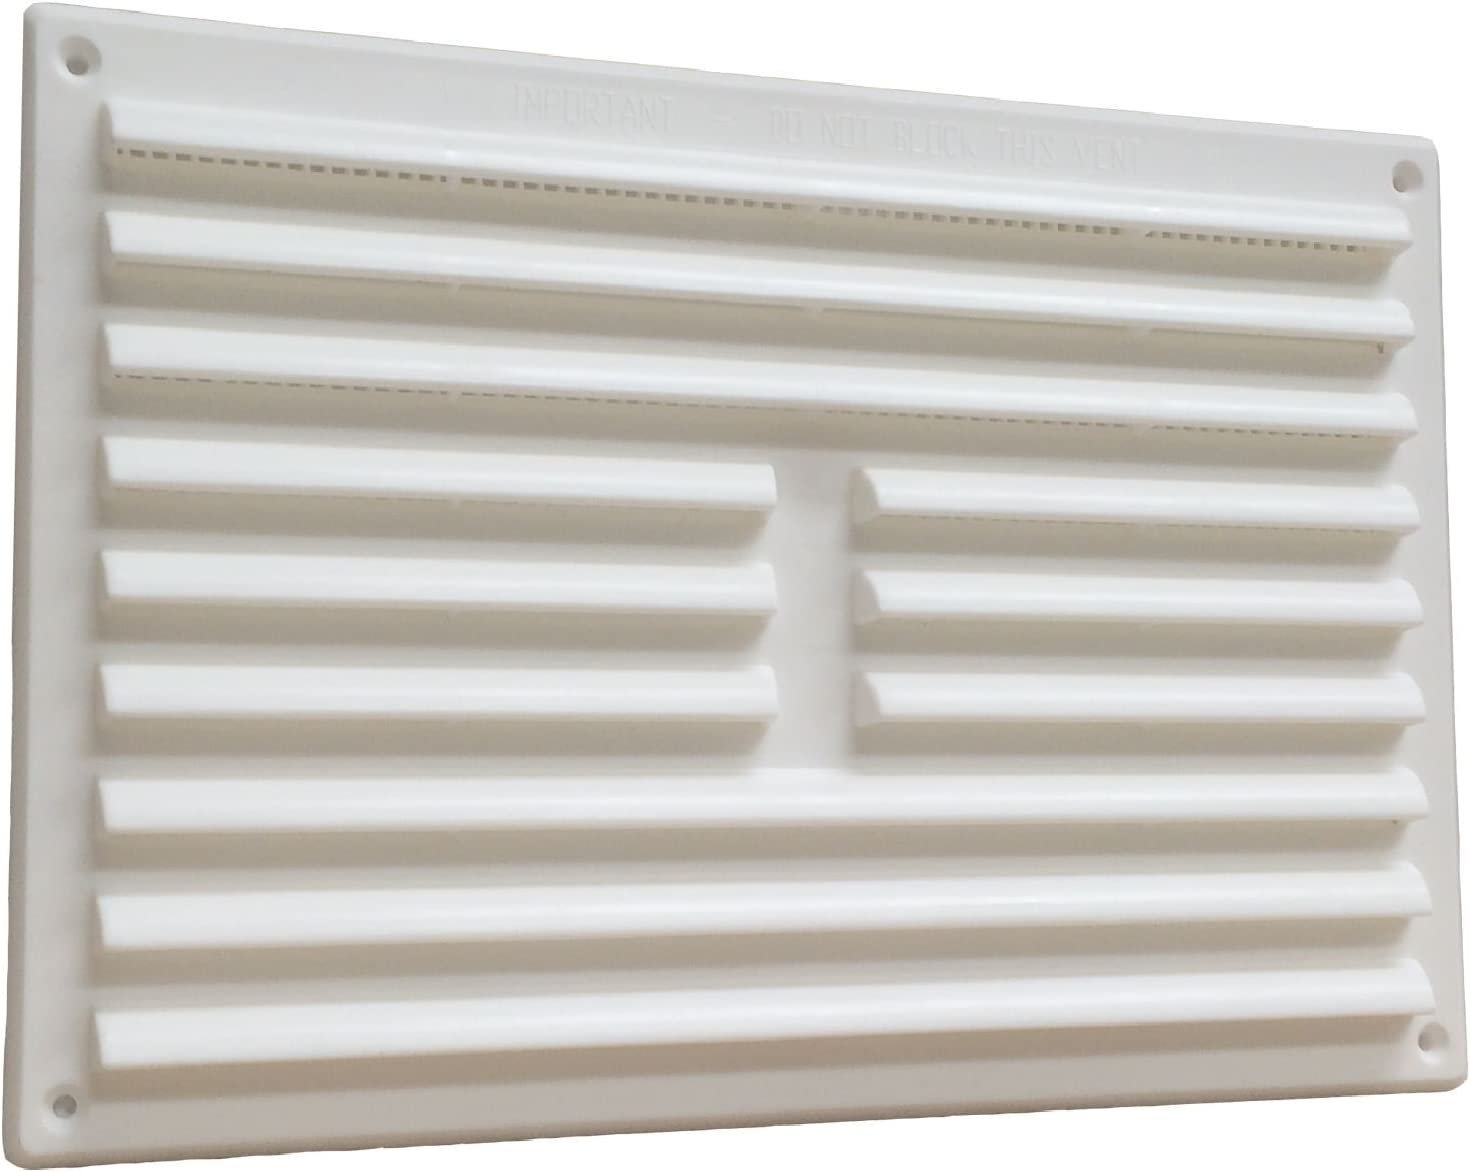 "Home Smart Plastic Louvre Air Vent Grille With Removable Flyscreen Cover 9"" X 6"" White"